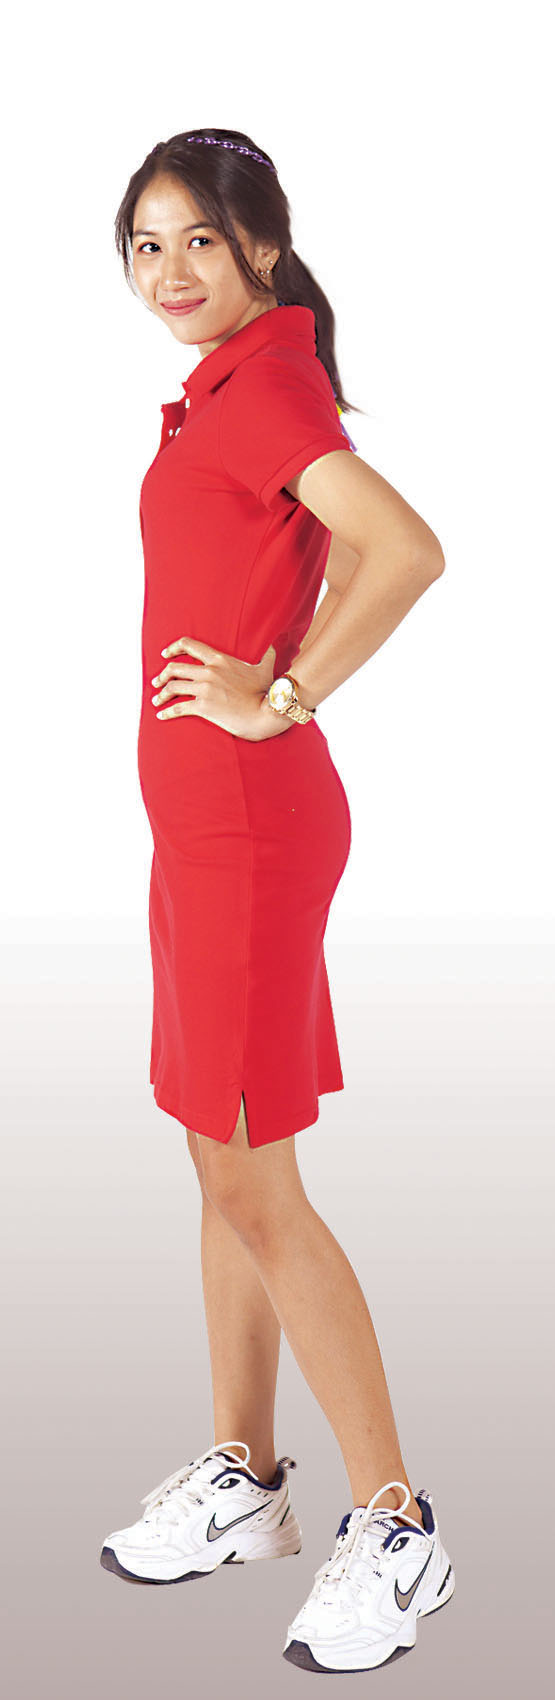 dress_polo_red